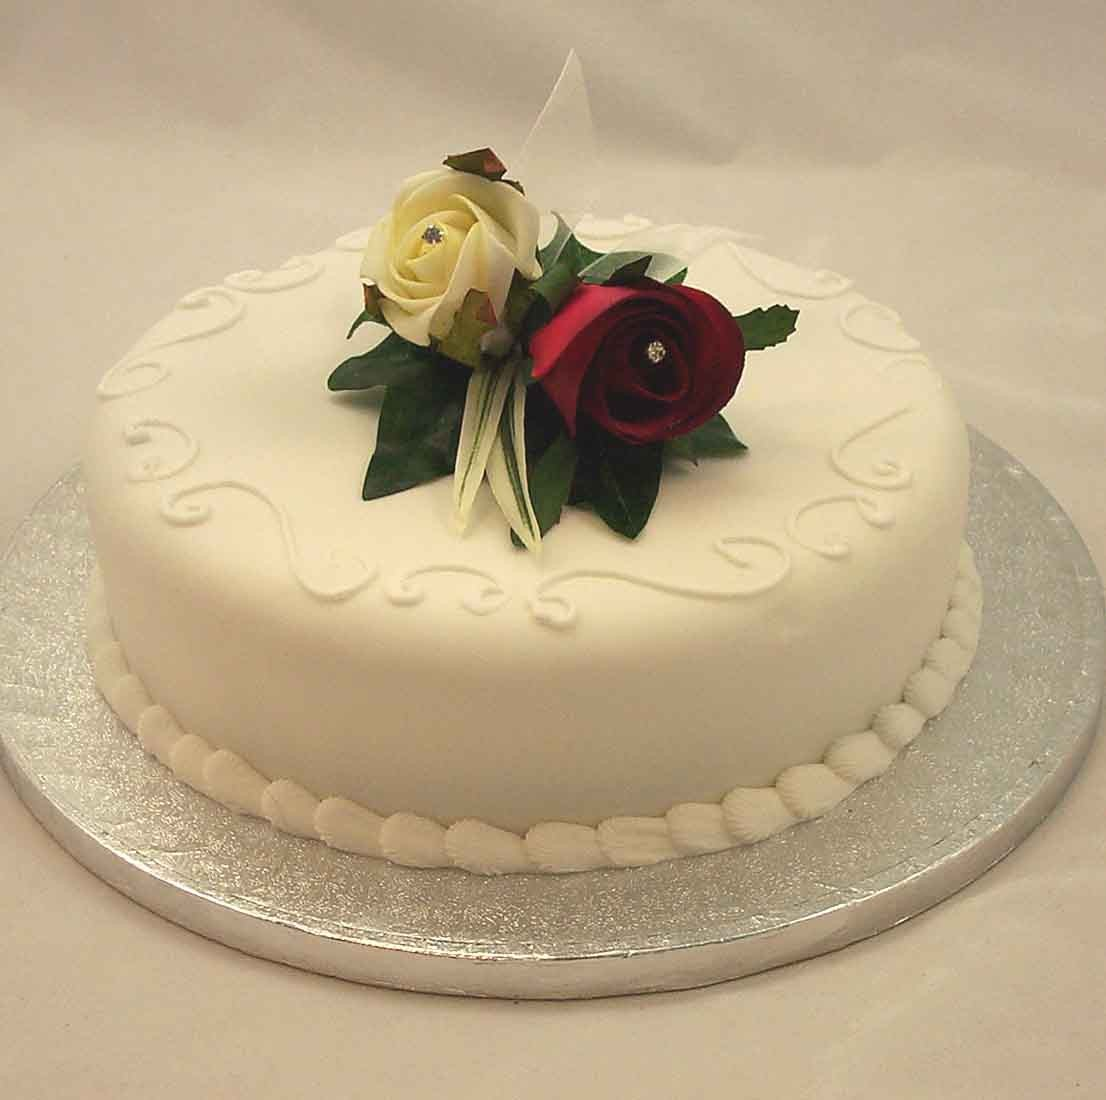 Burgundy & Ivory Rose Corsage Cake Topper